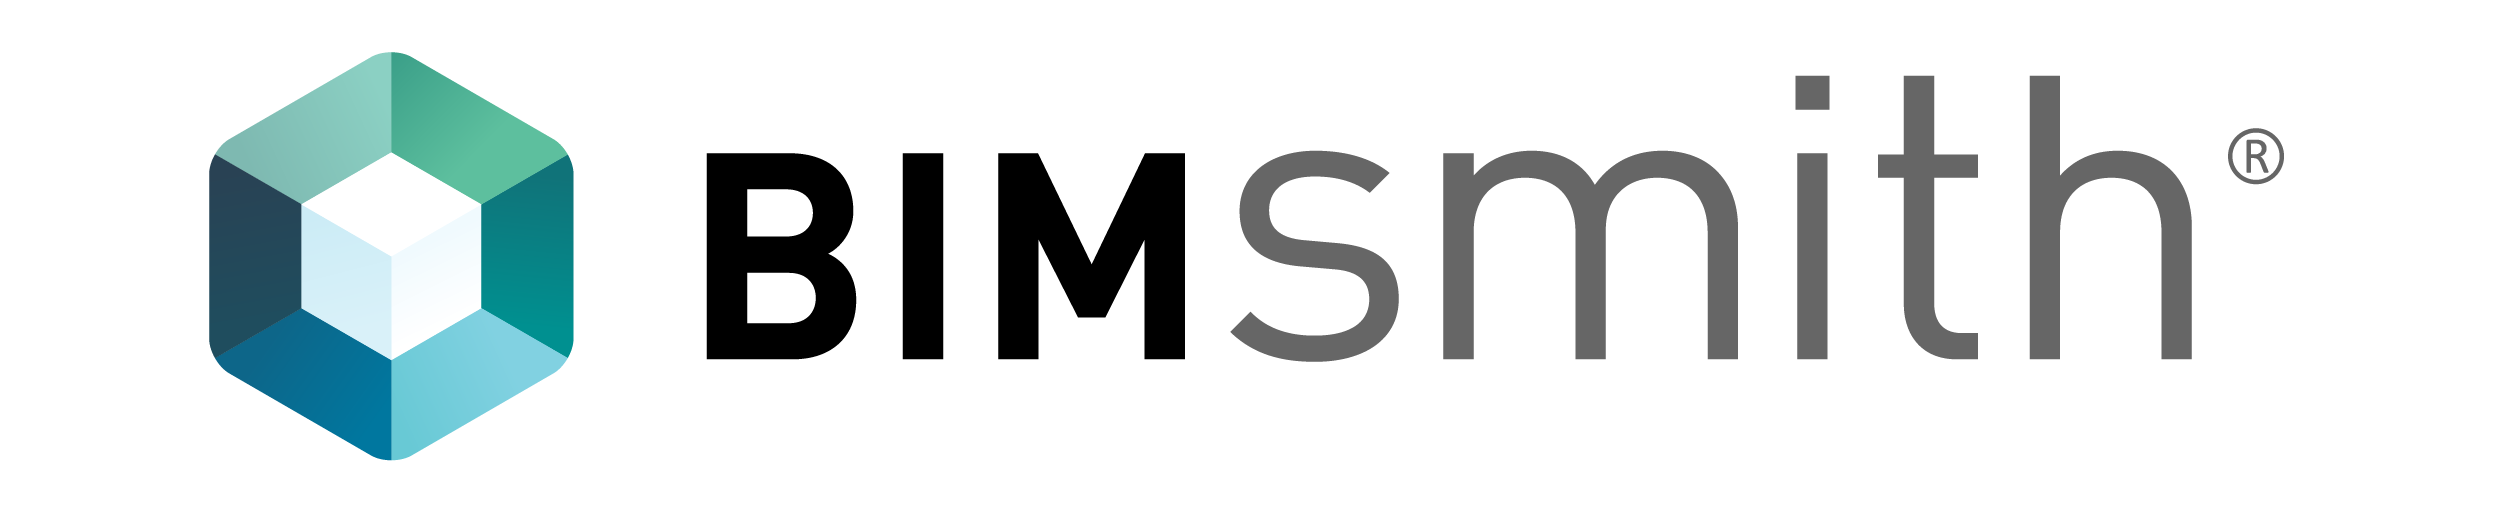 BIM Smith logo links to website.